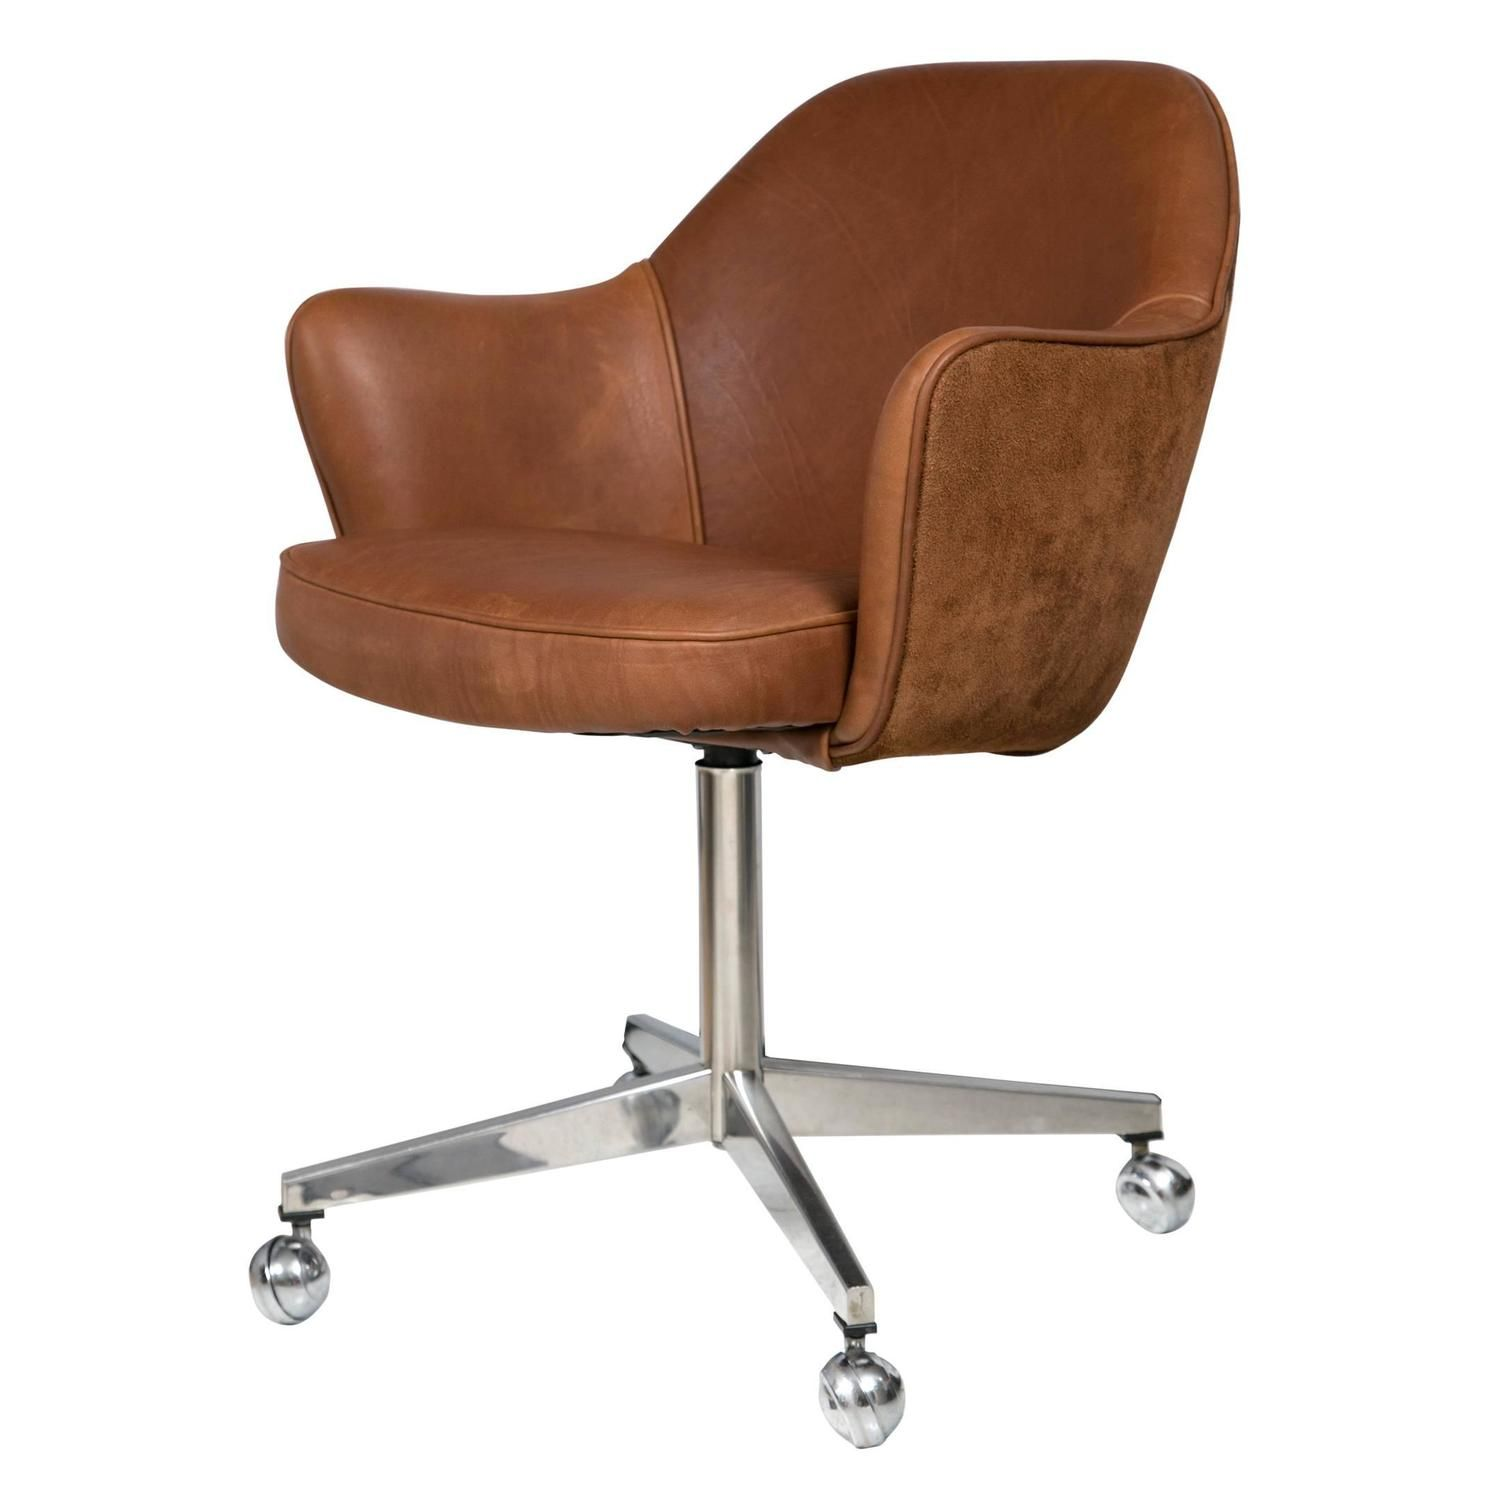 Knoll Desk Chair in Saddle Leather and Suede | Saddle ...